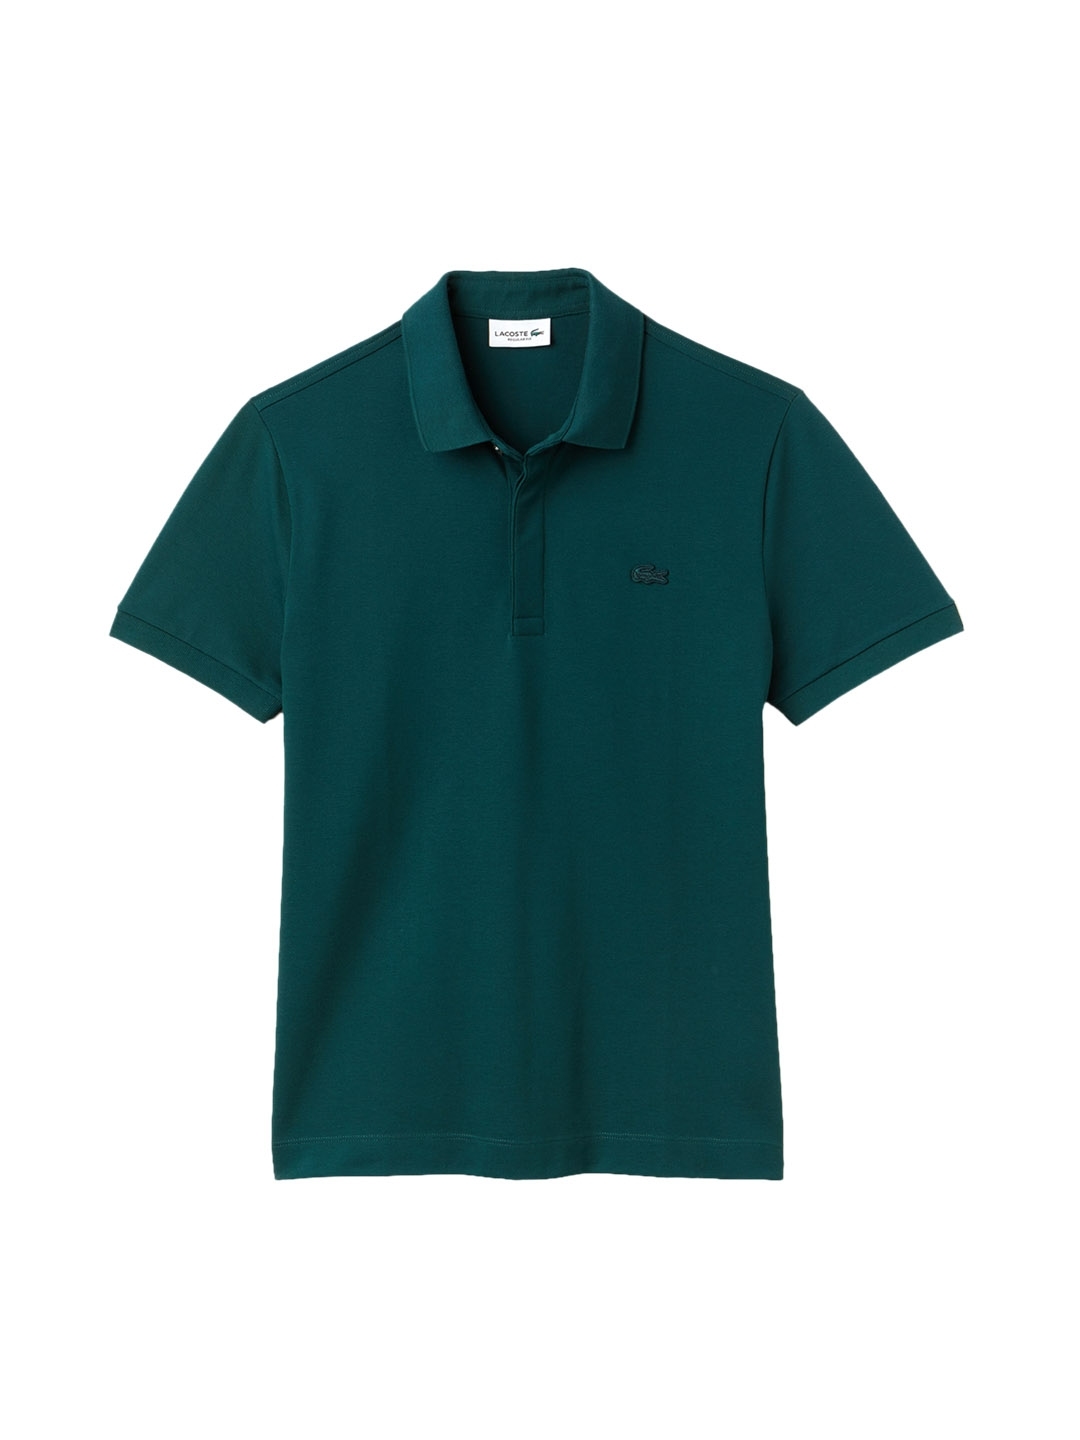 2f40e283c4f Lacoste Men Teal Blue Paris Polo Regular Fit Stretch Cotton Pique. This  product is already at its best price